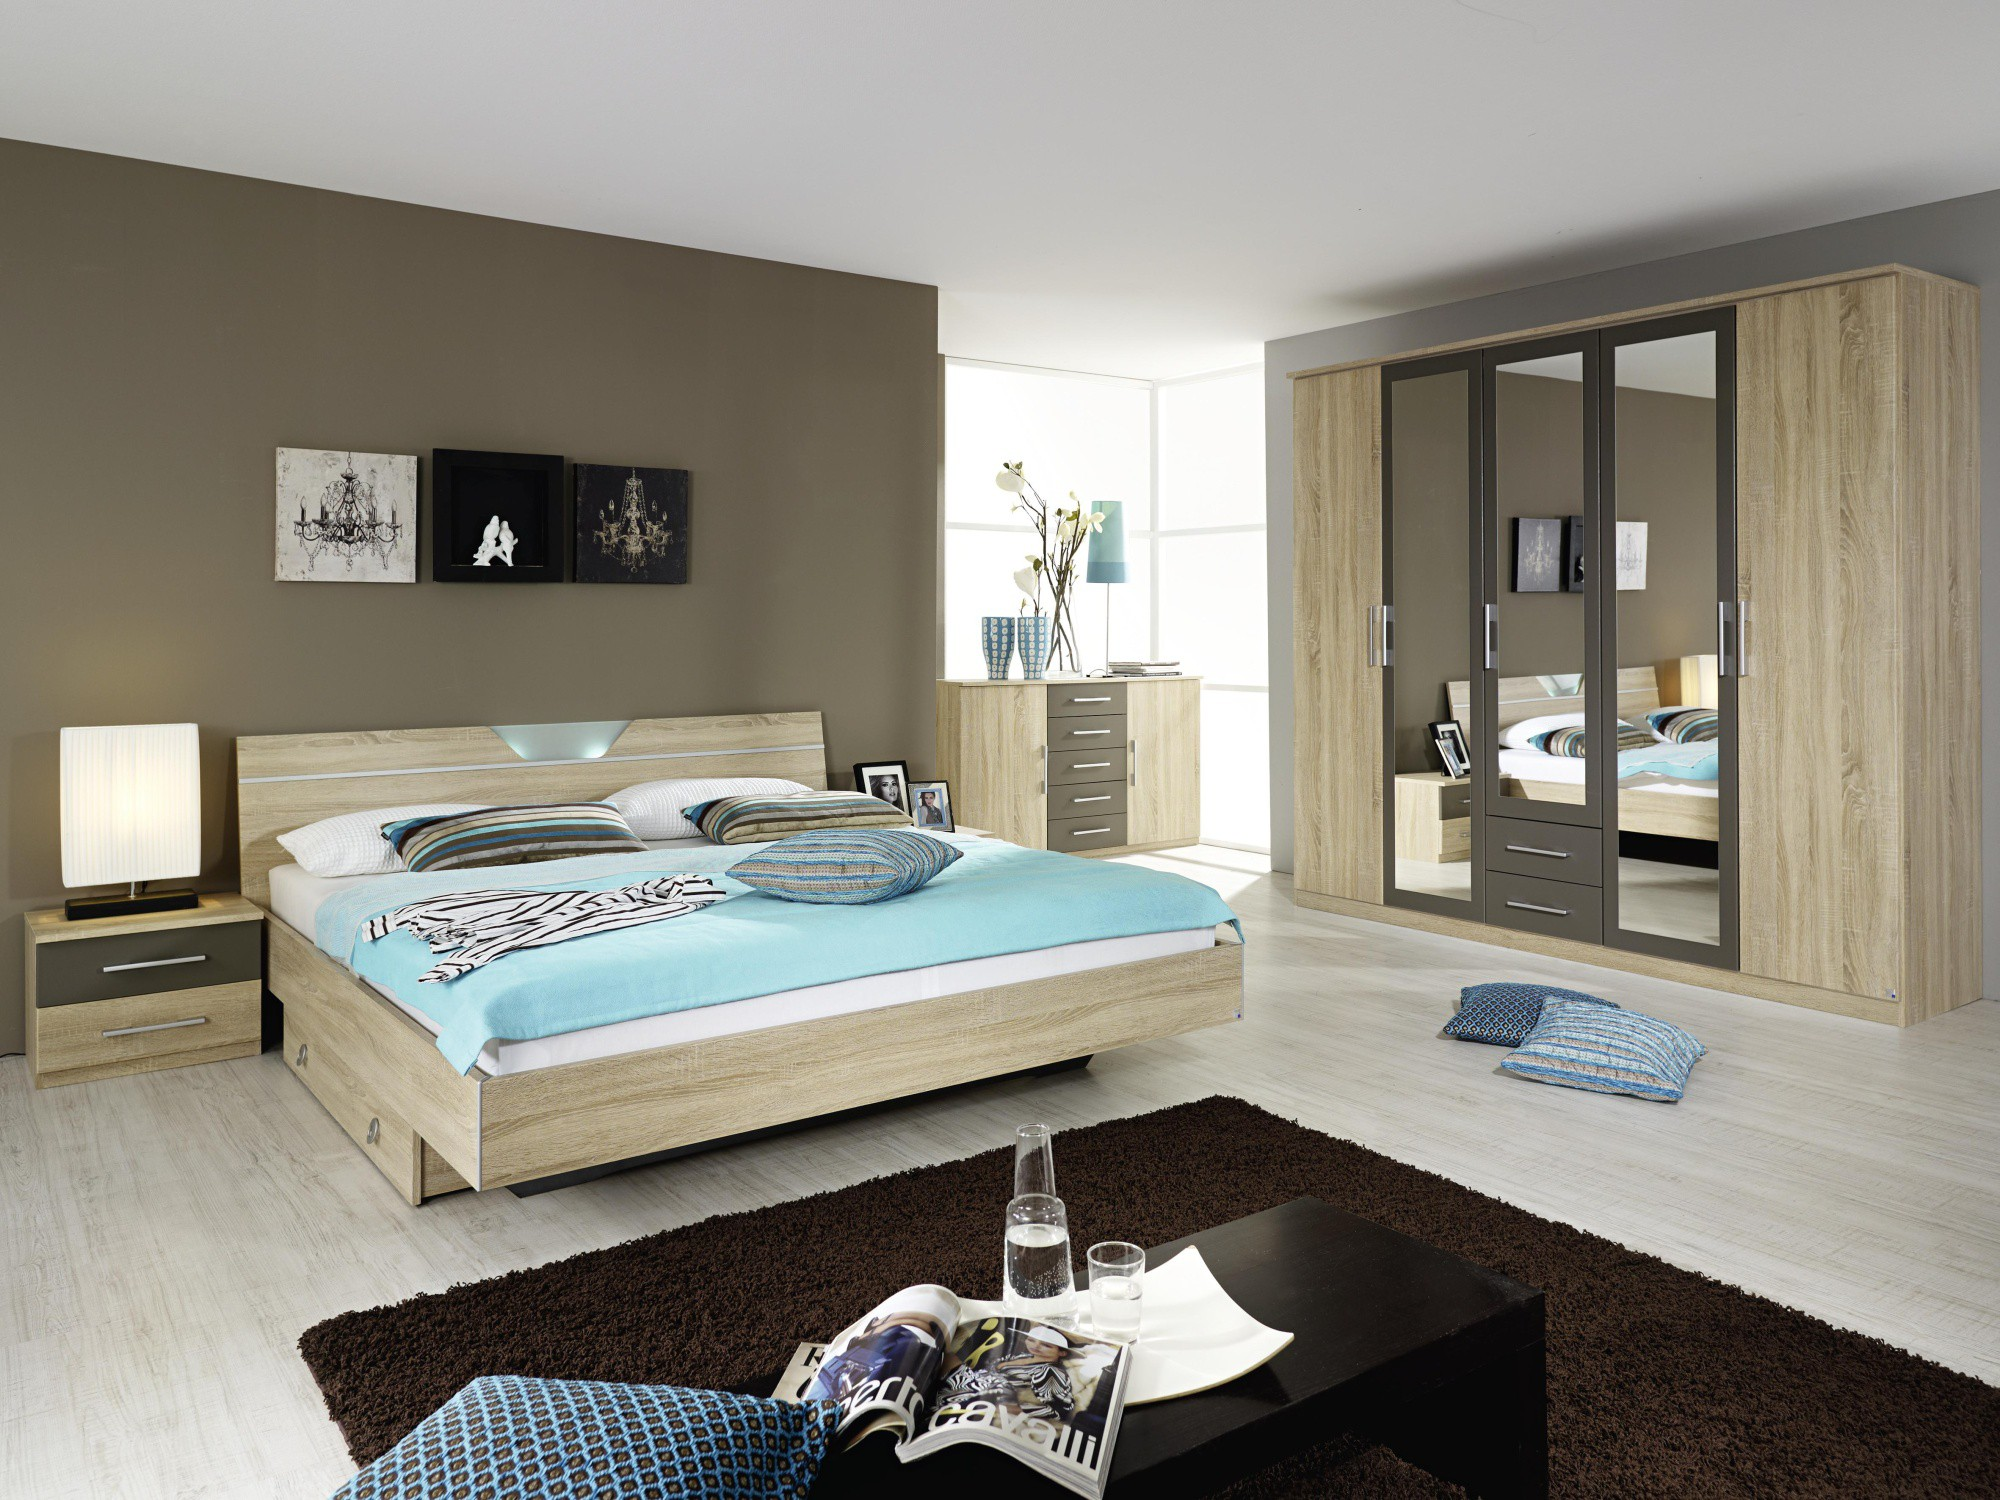 amnagement chambre adulte gallery of amenagement petite chambre adulte amnager une petite. Black Bedroom Furniture Sets. Home Design Ideas